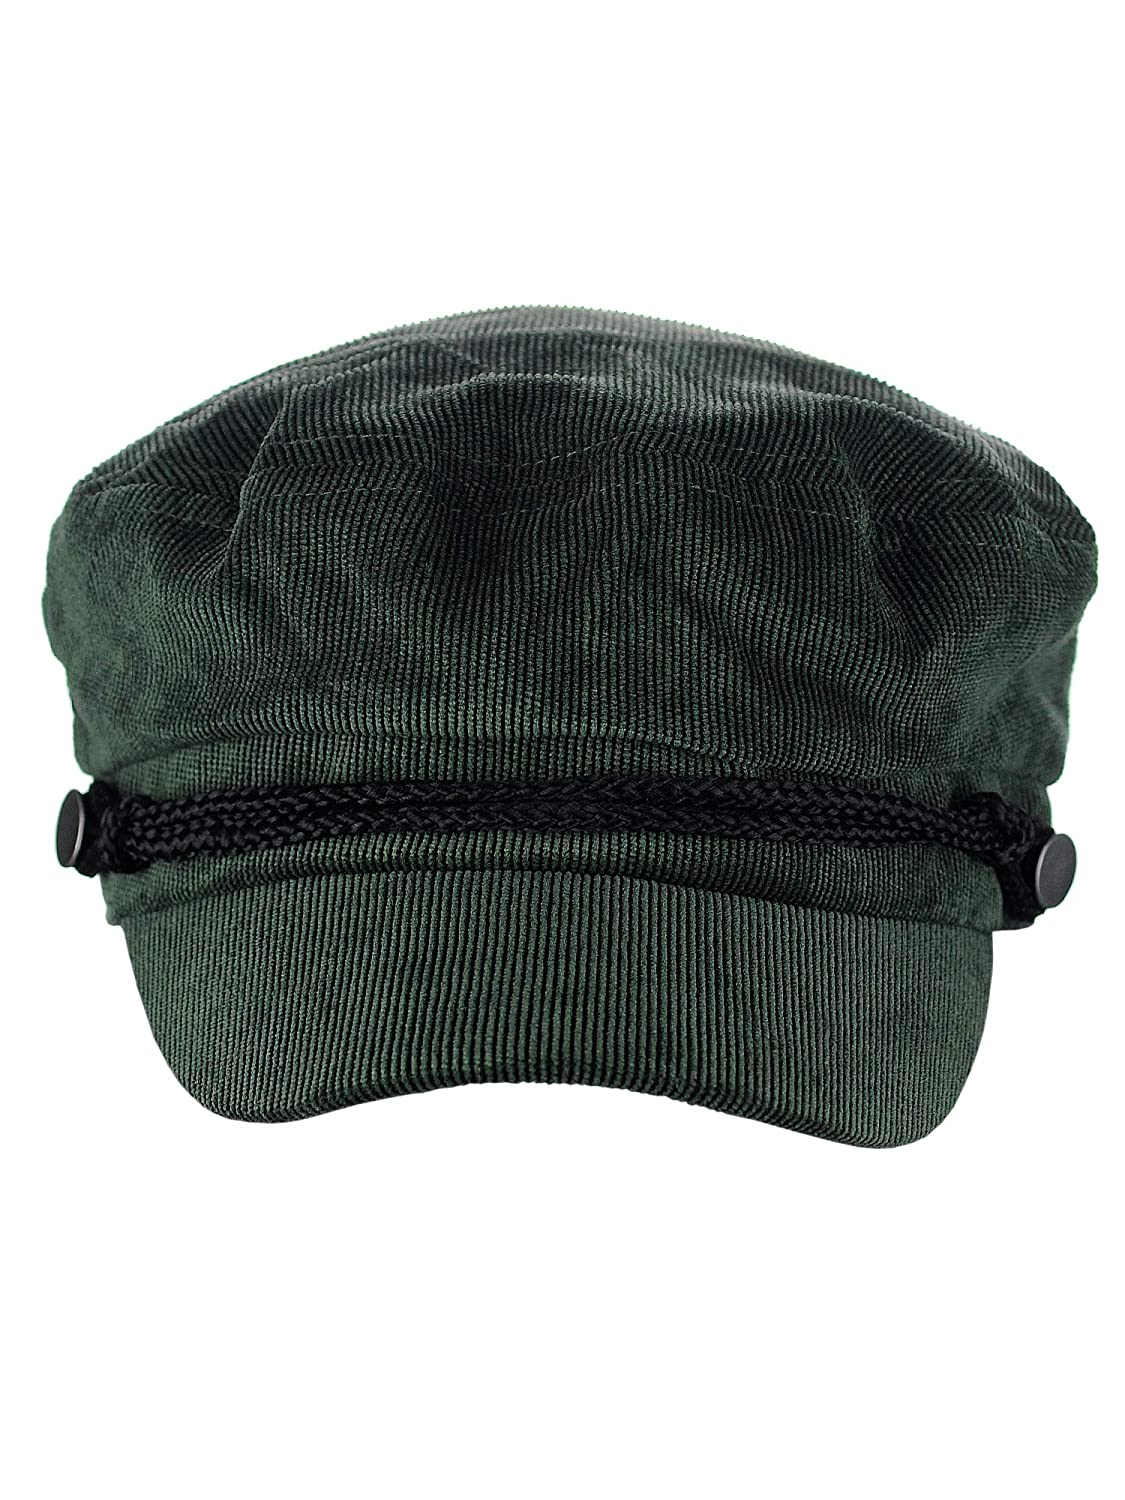 D/&Y Solid Corduroy with Rope Detailed Fisherman Cabbie Newsboy Cap